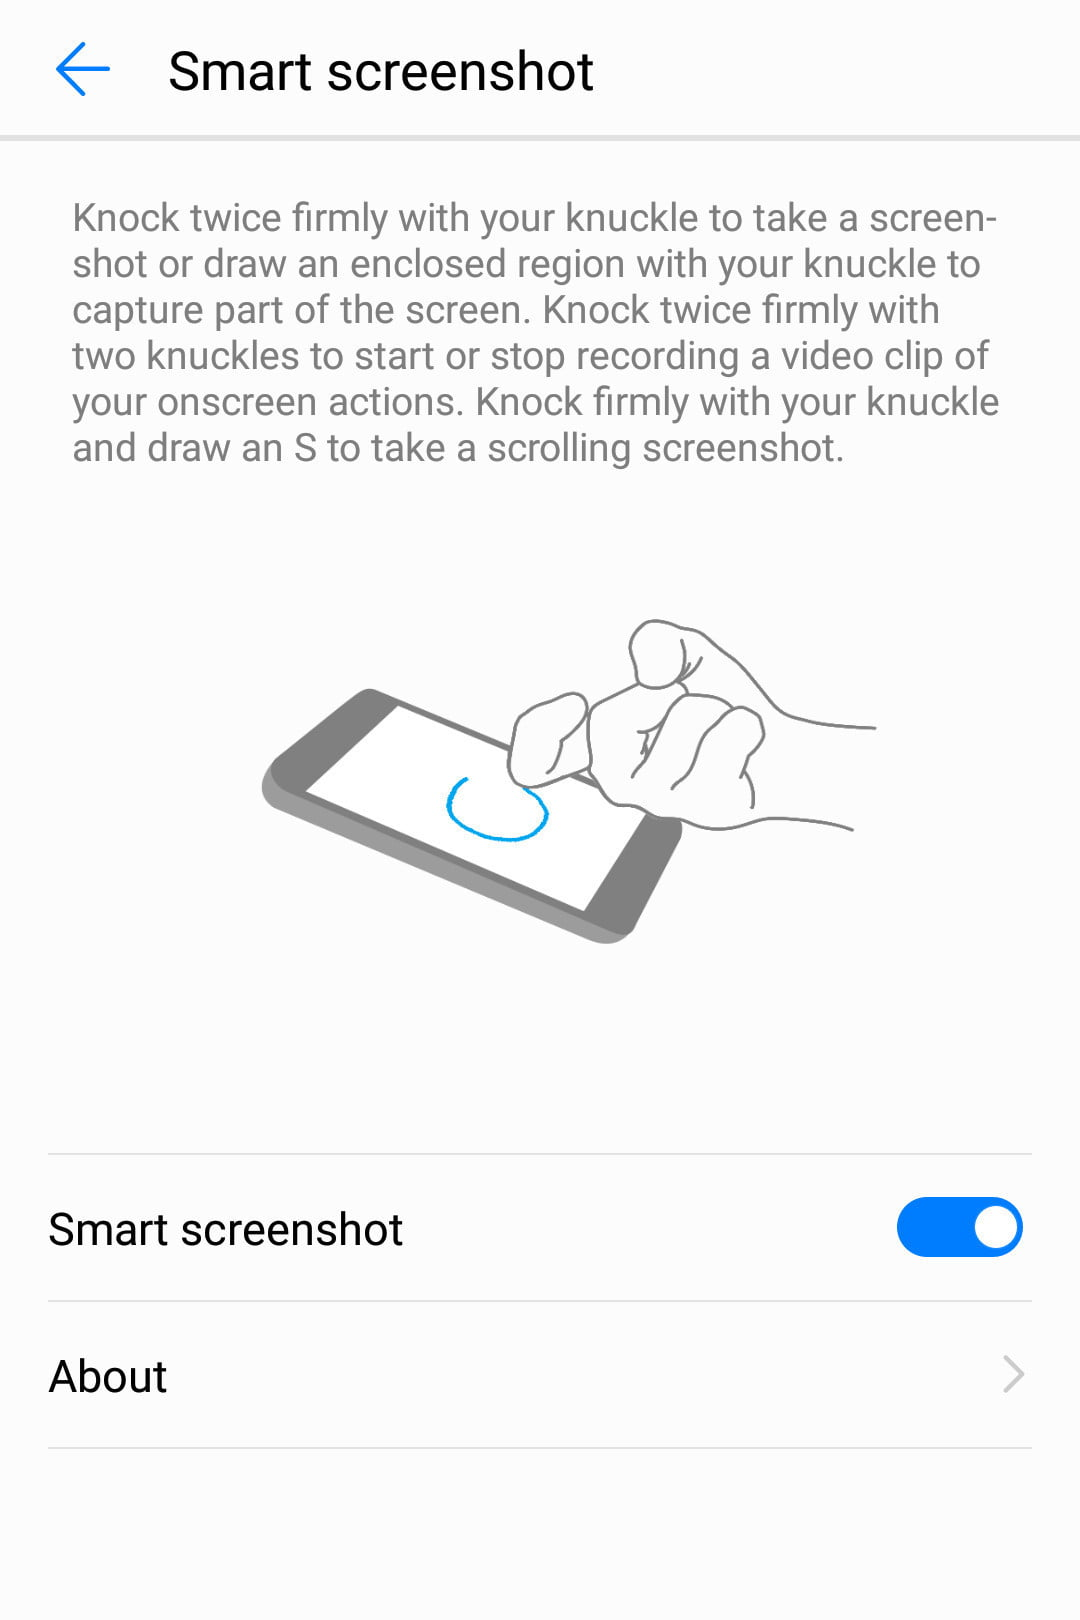 Honor 8 Tips Tricks To Help You Get The Most From Your Phone Computer Diagram With Following Parts Labeled Cpu Monitor Apps Knuckle Gestures 2